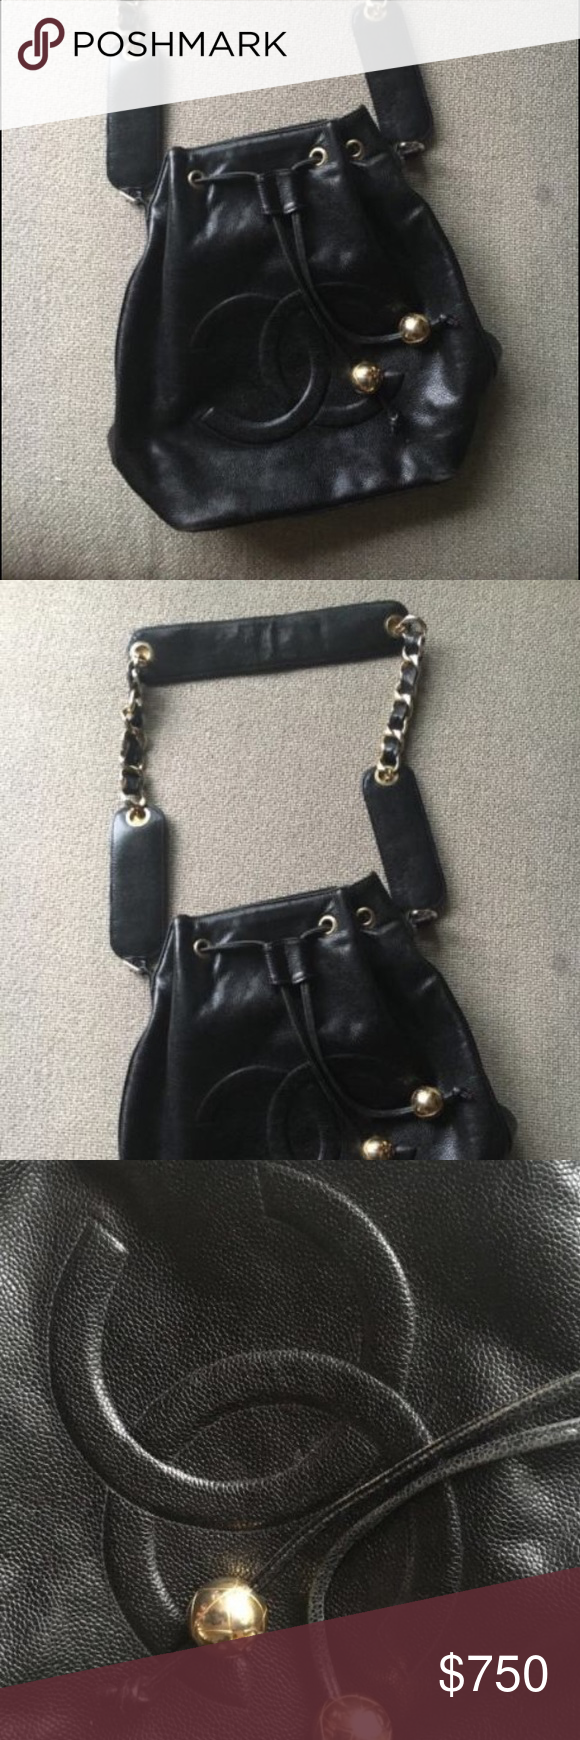 Auth Chanel bucket bag Vintage Chanel bucket bag in good preowned condition.  The hologram has b4ccb3ecee6c8